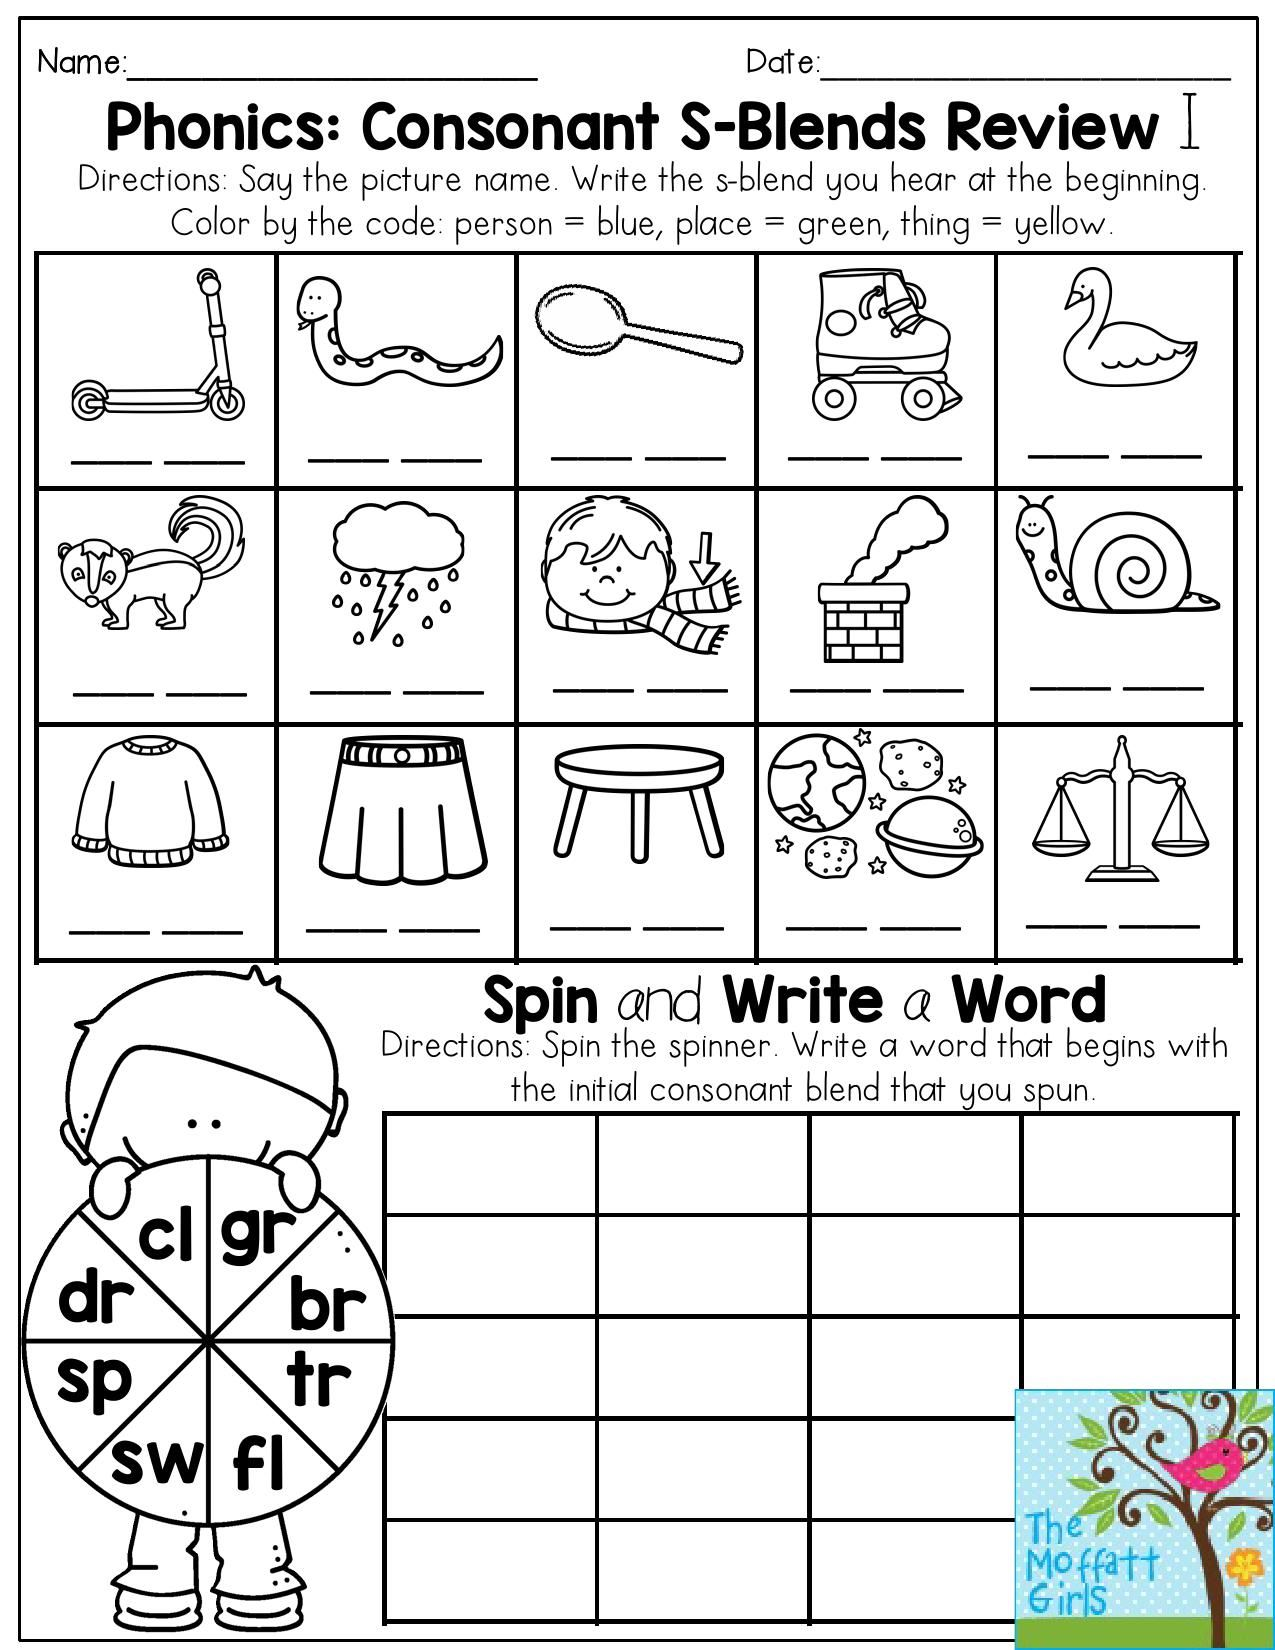 Phonics Consonant S Blends Review Write The S Blend That